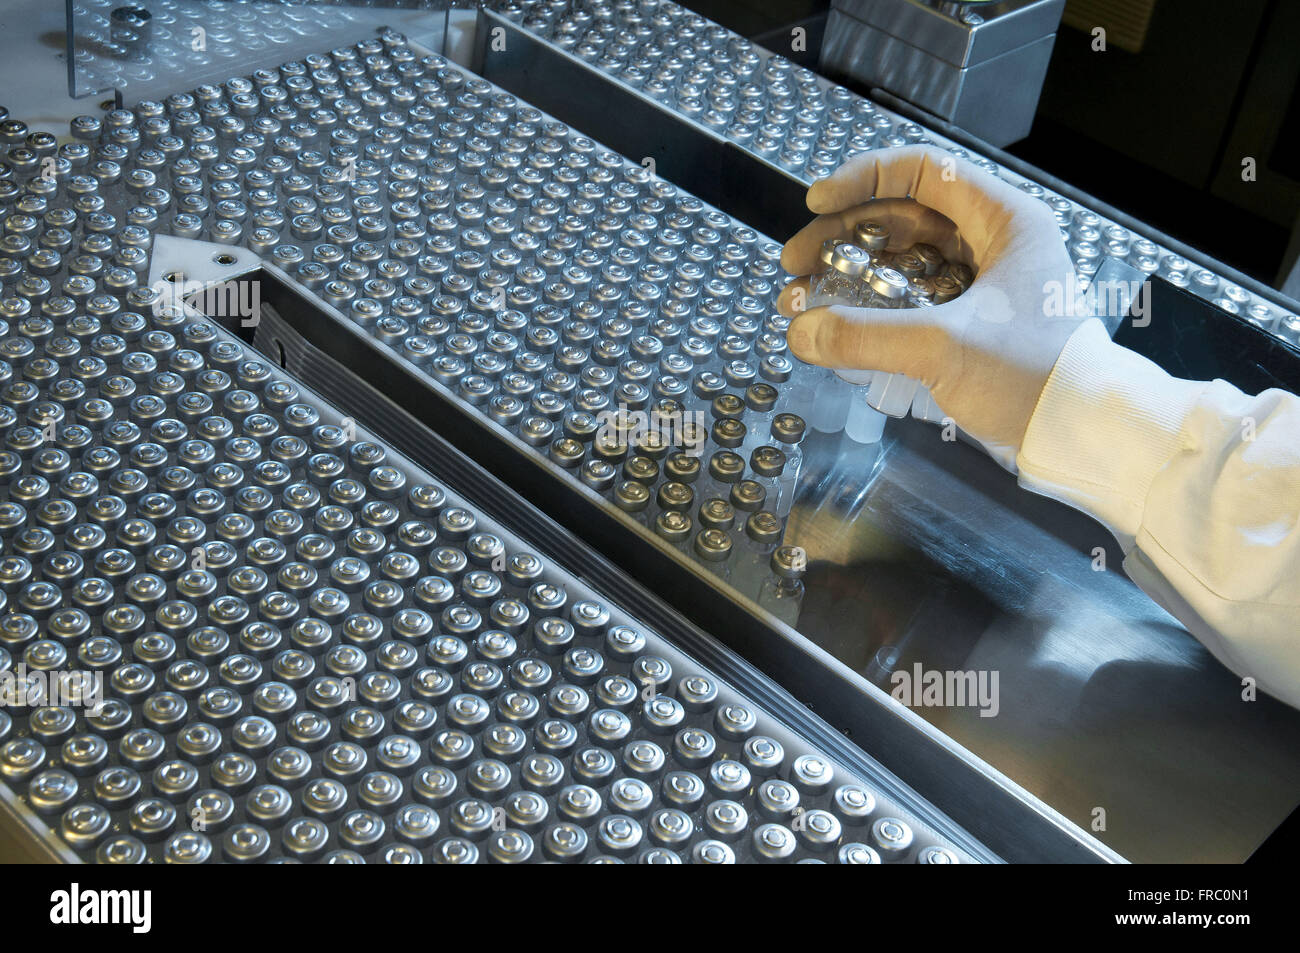 Production of combination vaccines - Stock Image